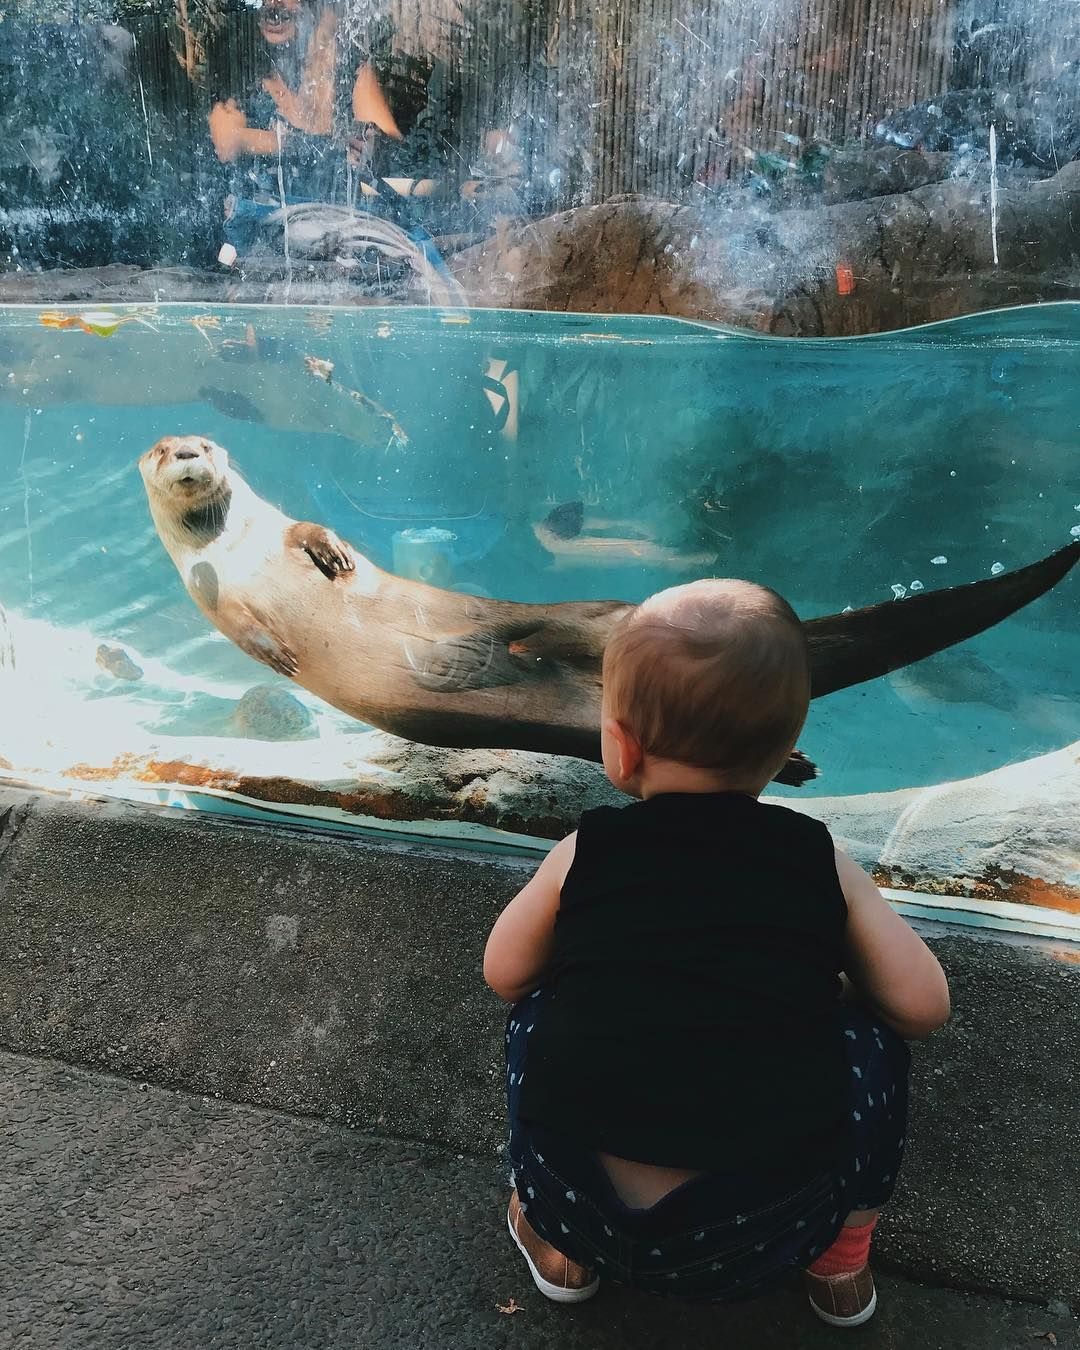 Providence Rhode Island Beaches: From Visiting Roger Williams Park Zoo And RISD Museum To